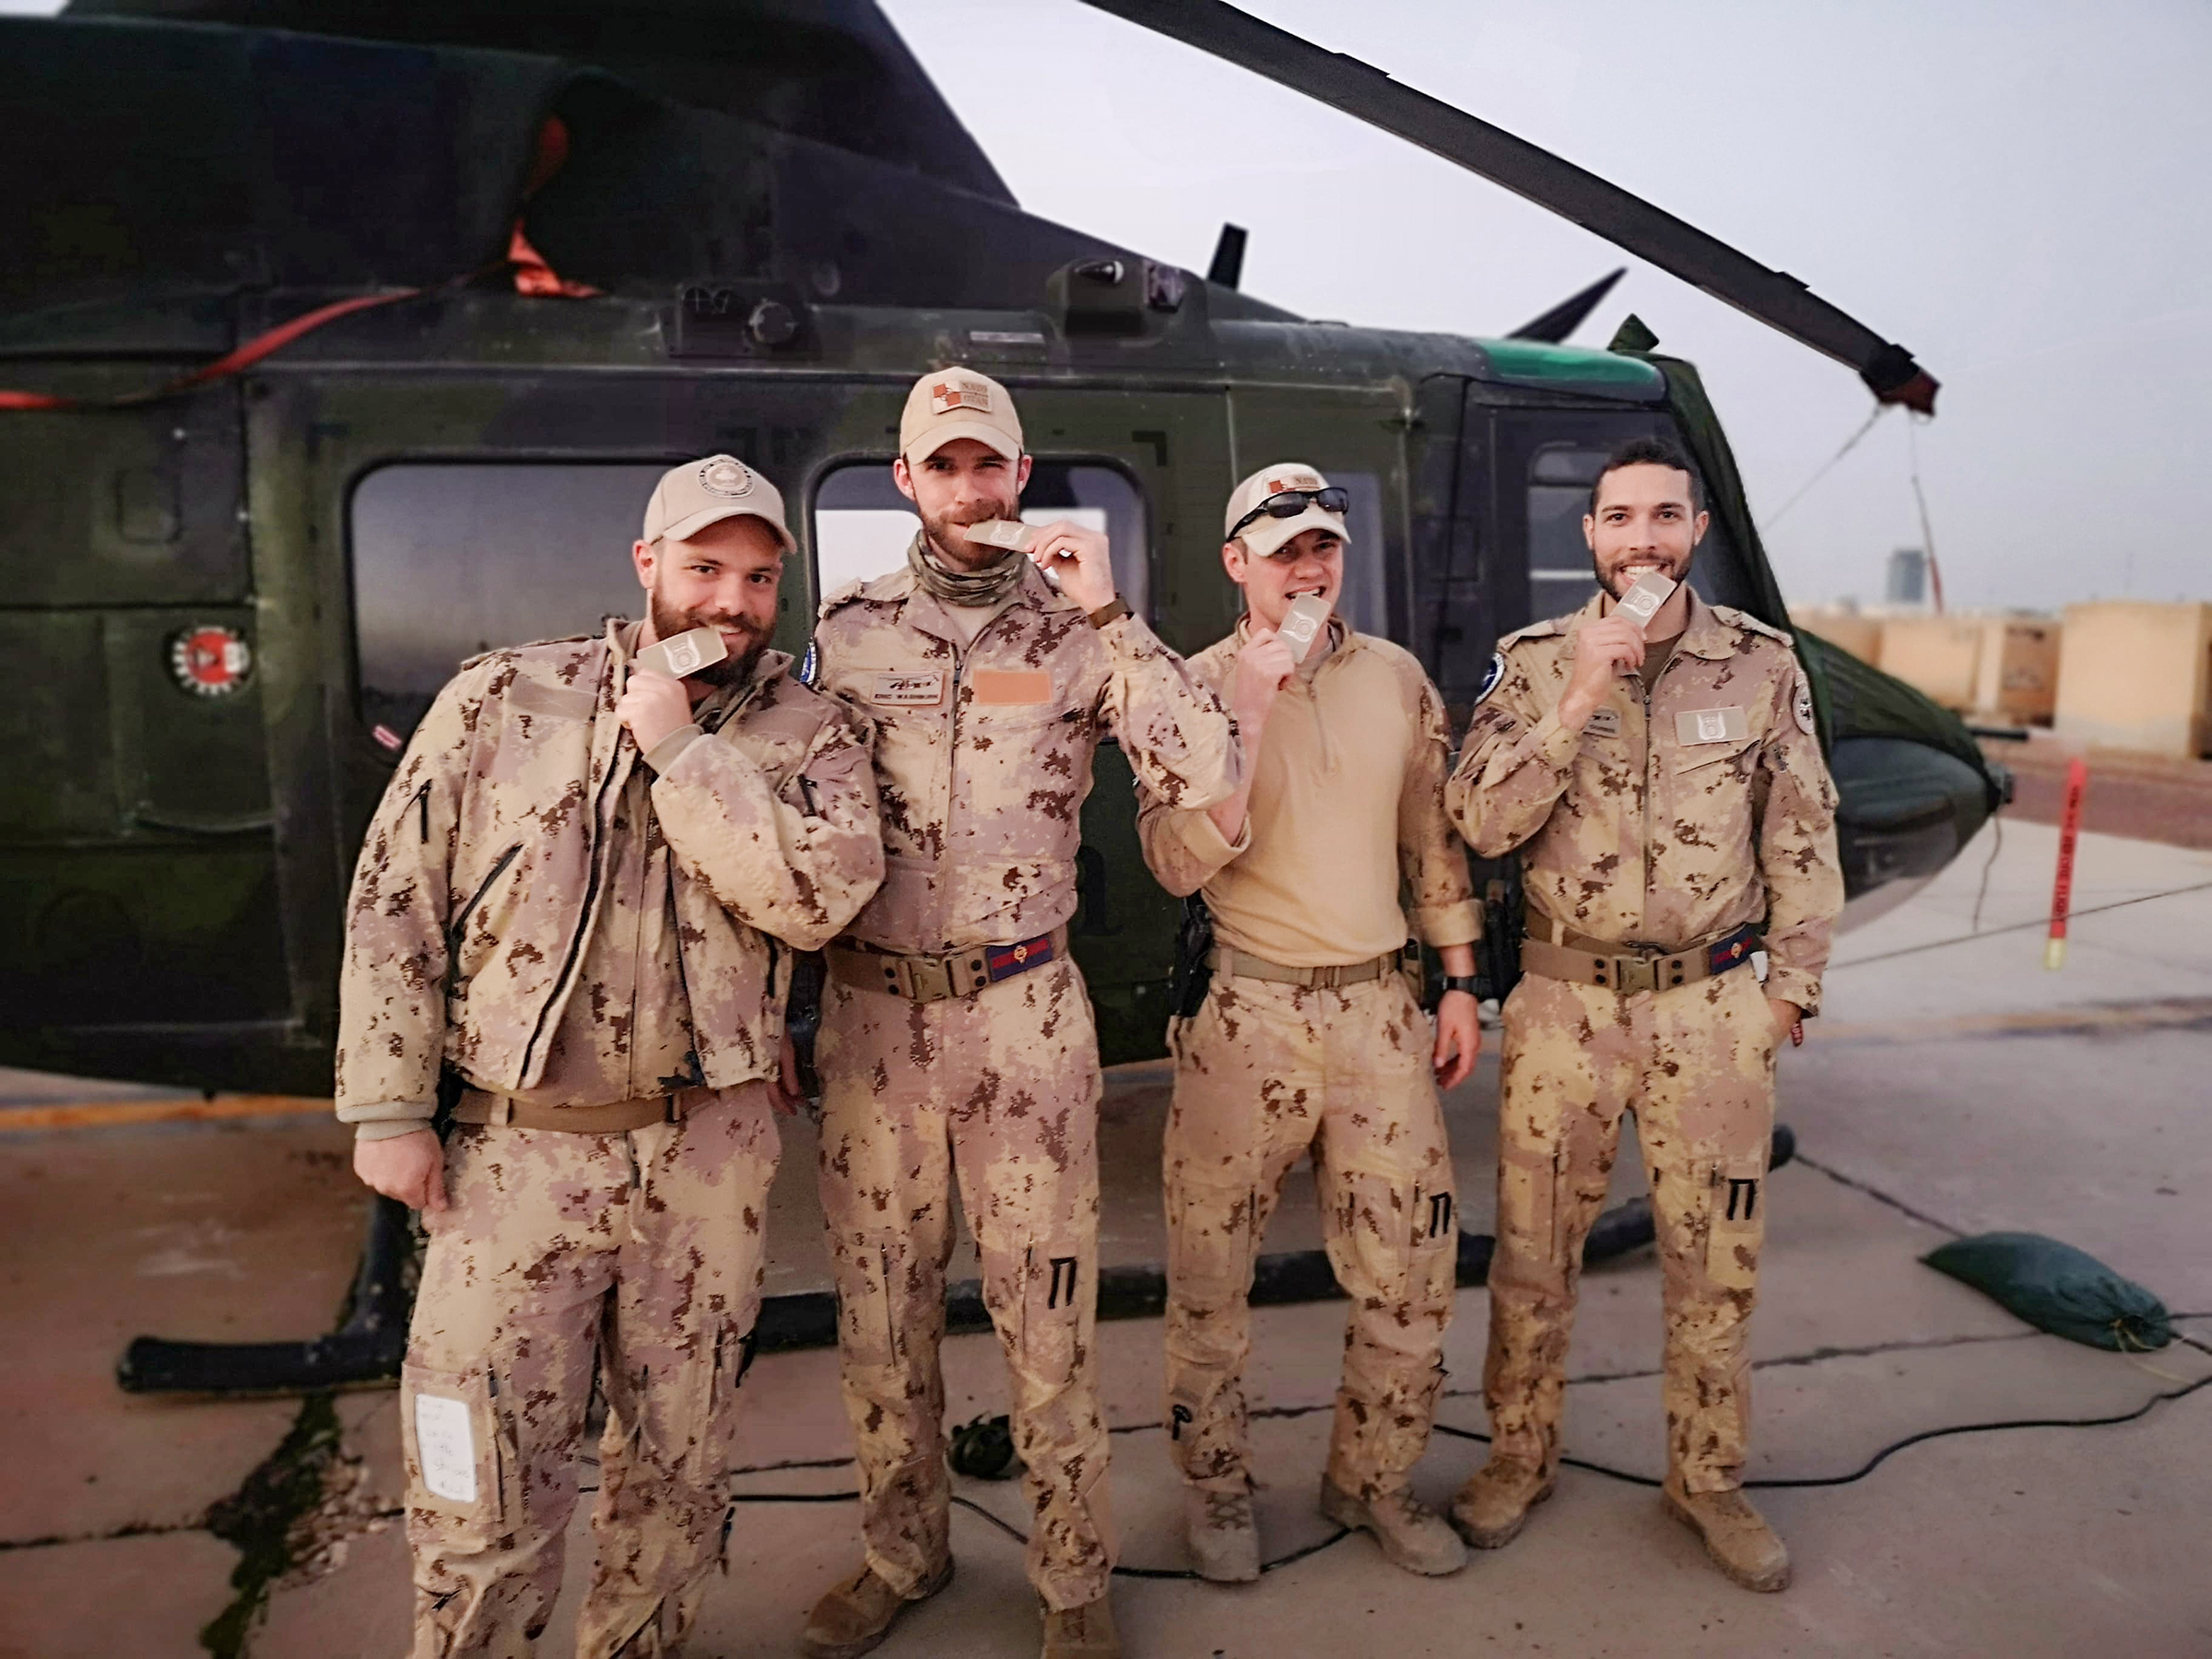 Four people wearing desert camouflage pattern uniforms stand in front of a helicopter and each bites the corner of a small embroidered piece of cloth.